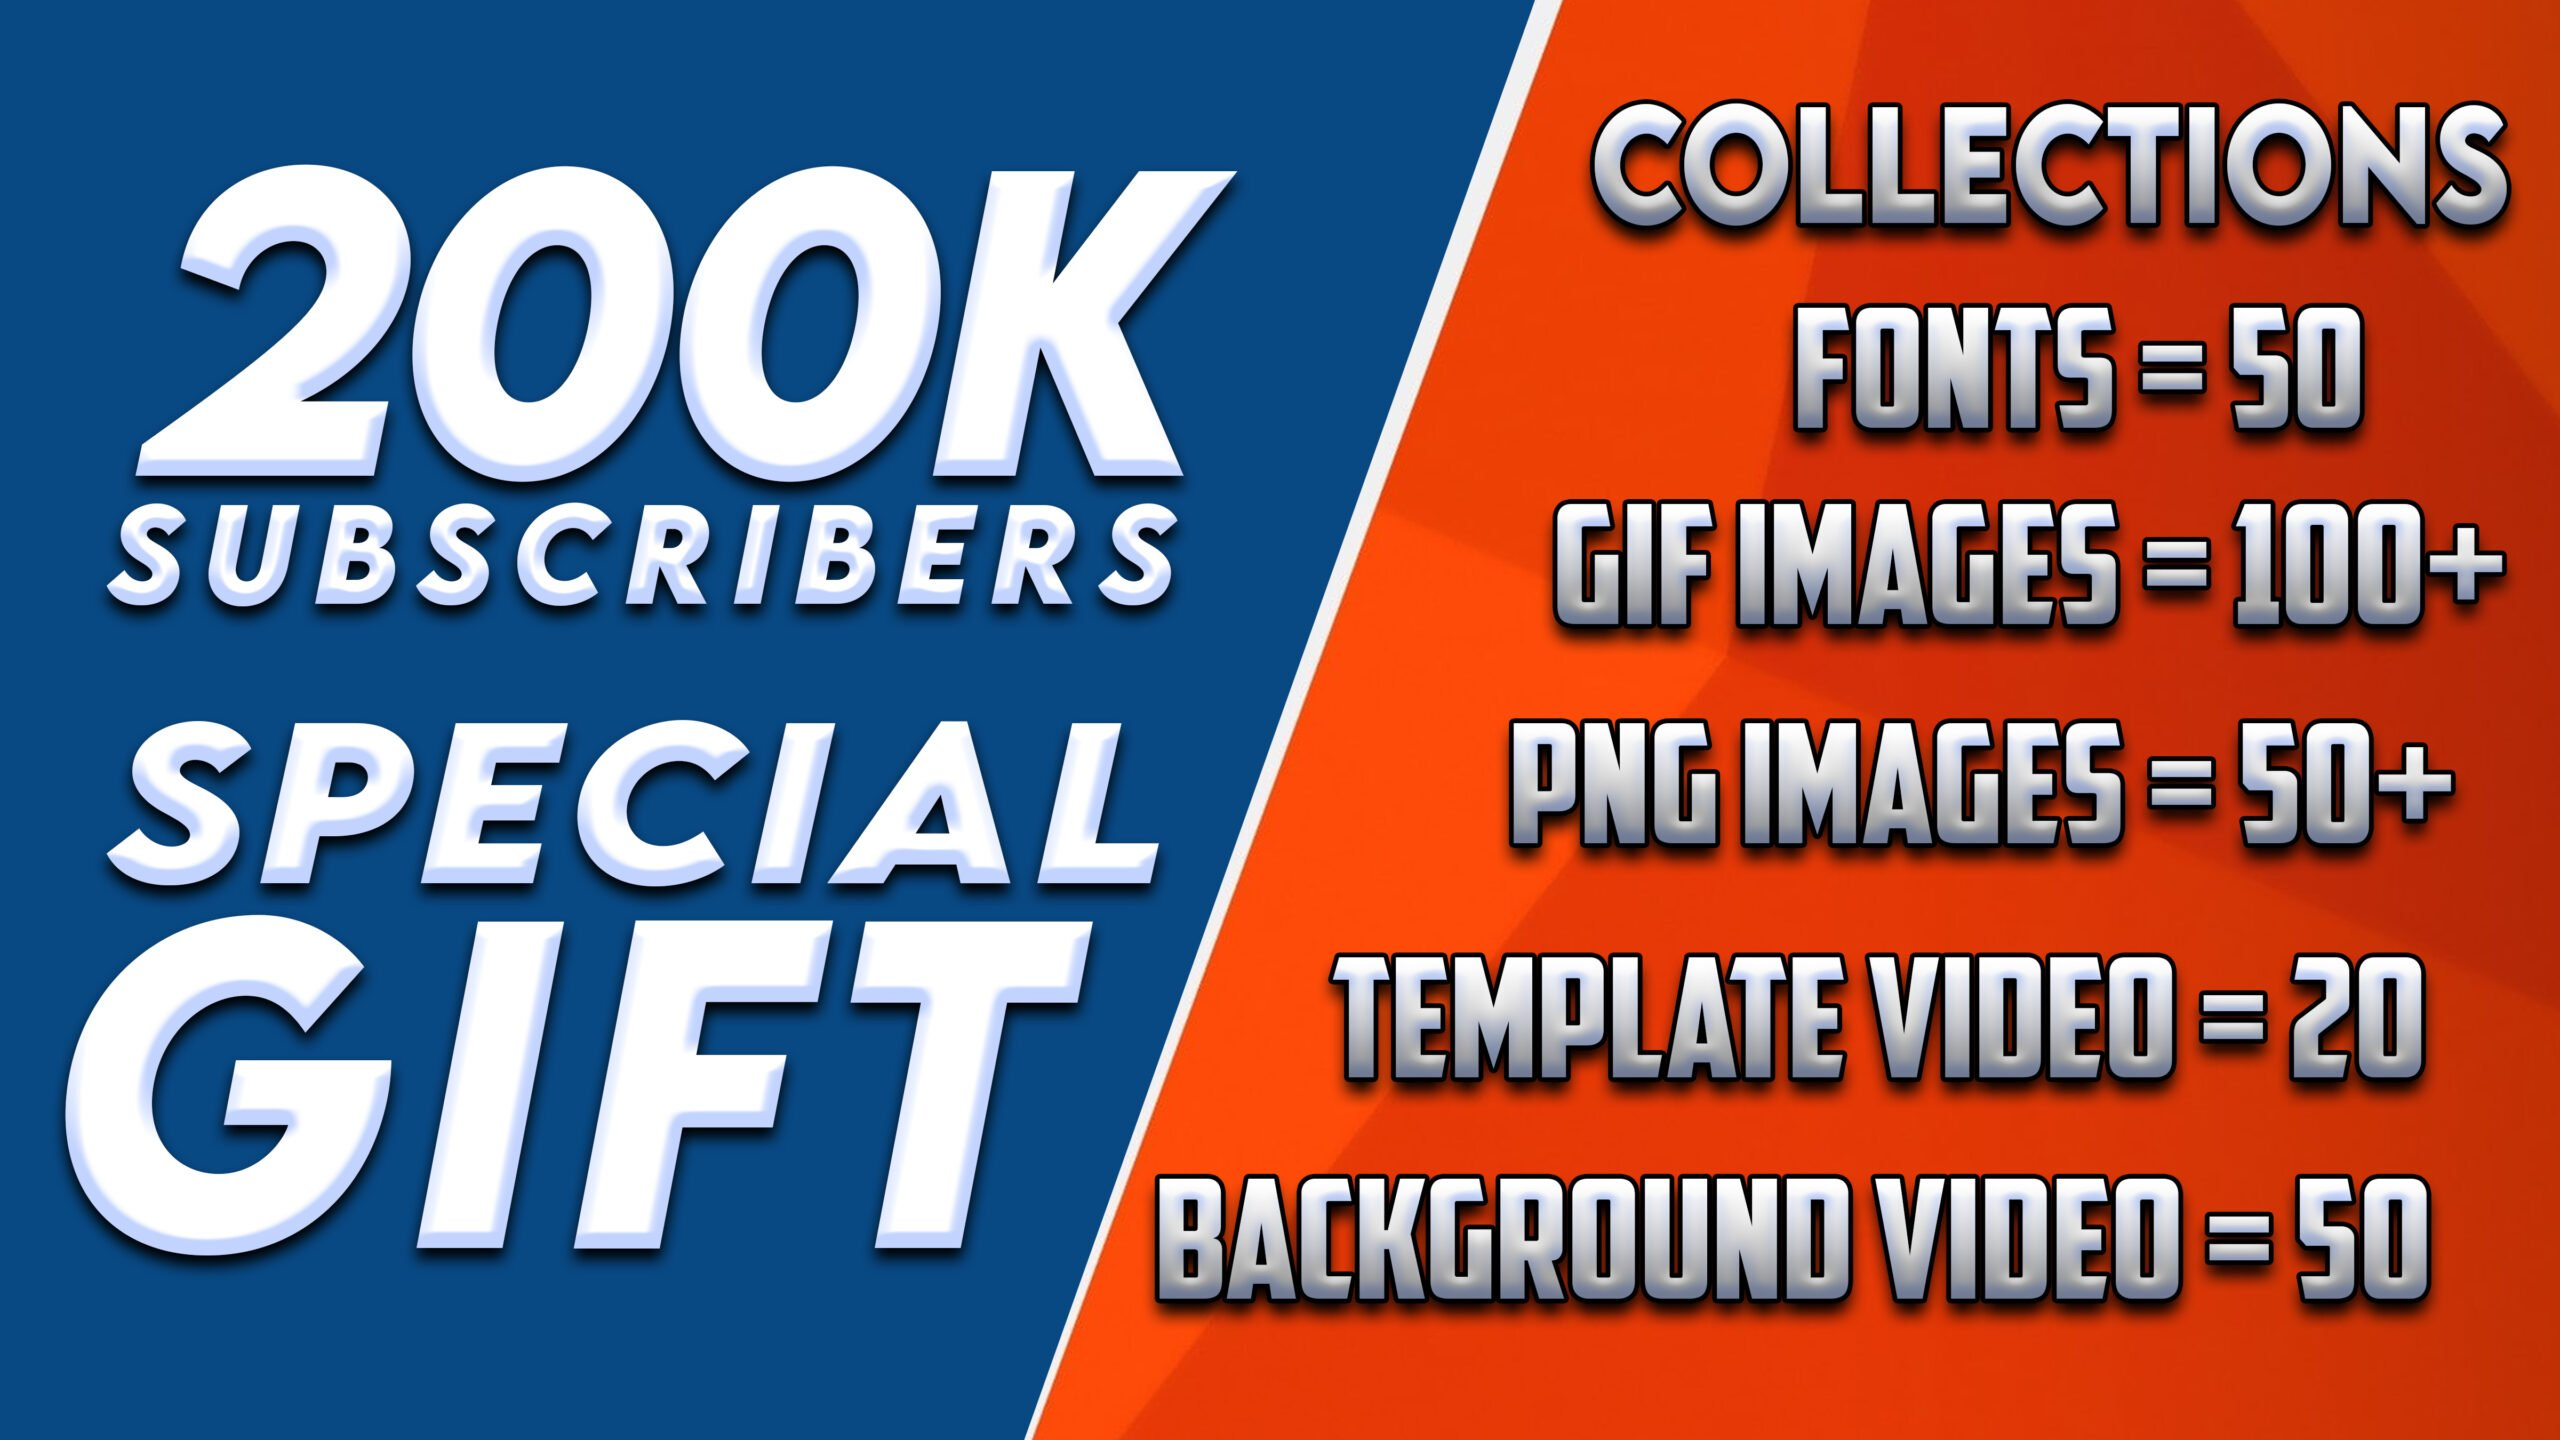 2,00,000 Subscribers Special Gift | 200k GIFT #1 | 50 Fonts Collection